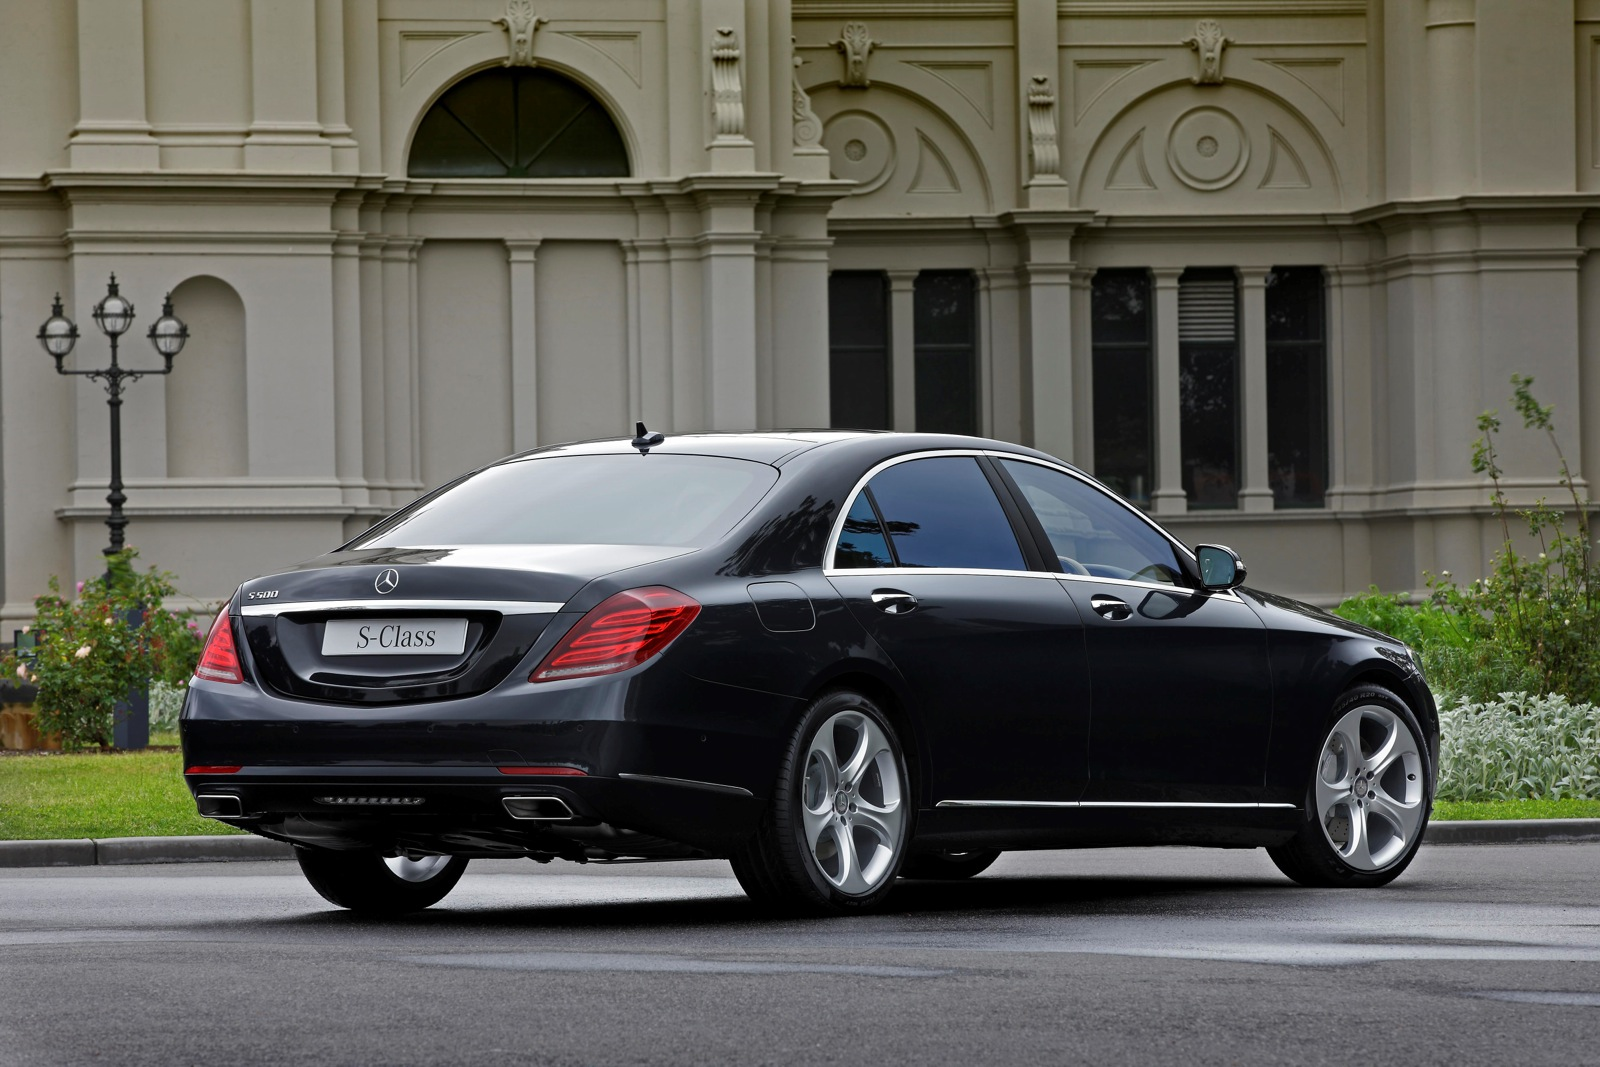 2014 mercedes benz s class unveiled in melbourne photos 1 of 6. Black Bedroom Furniture Sets. Home Design Ideas